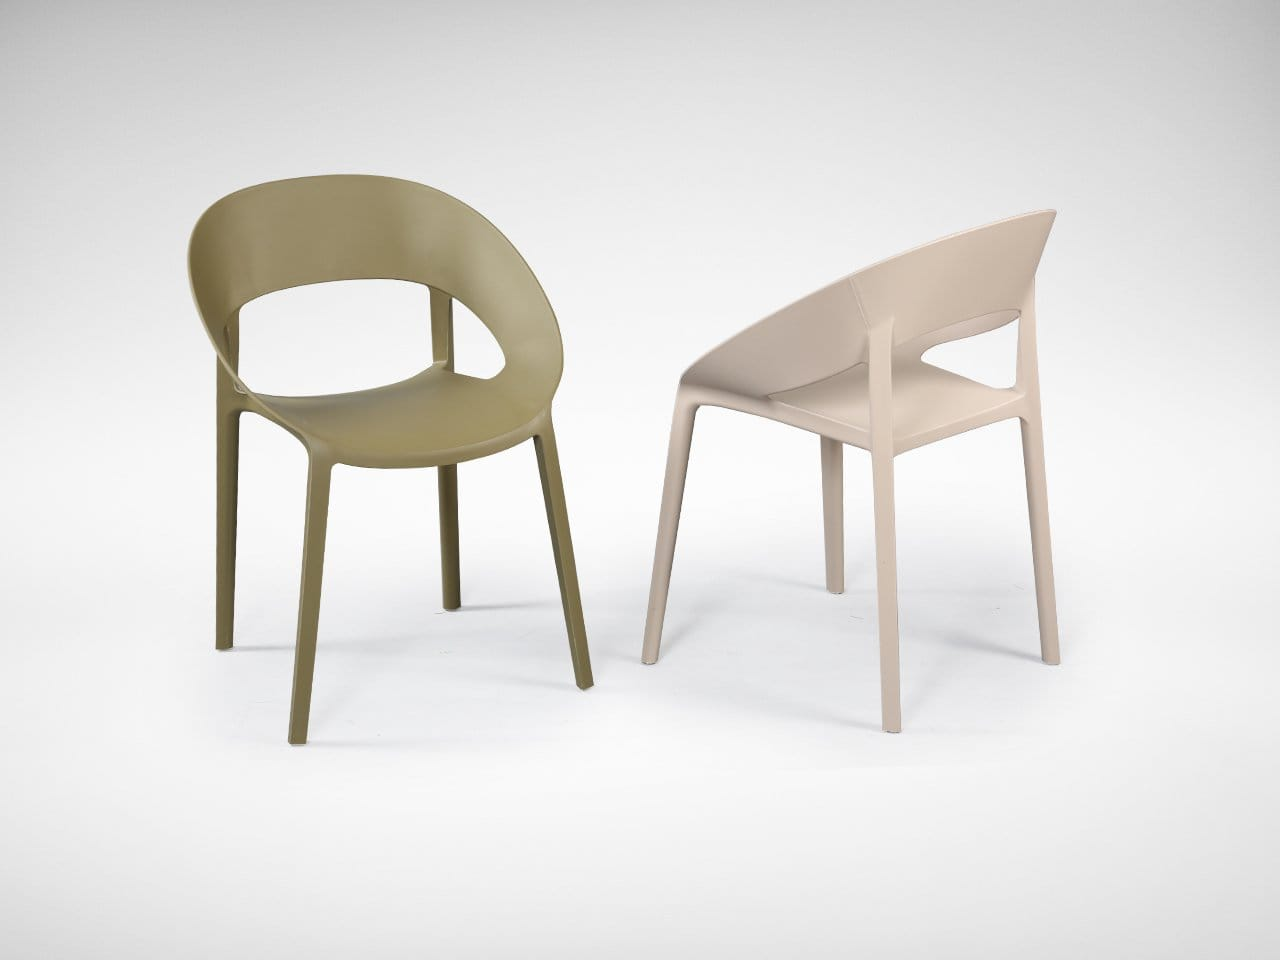 Mumbai Chair Comfort Design The Chair Amp Table People